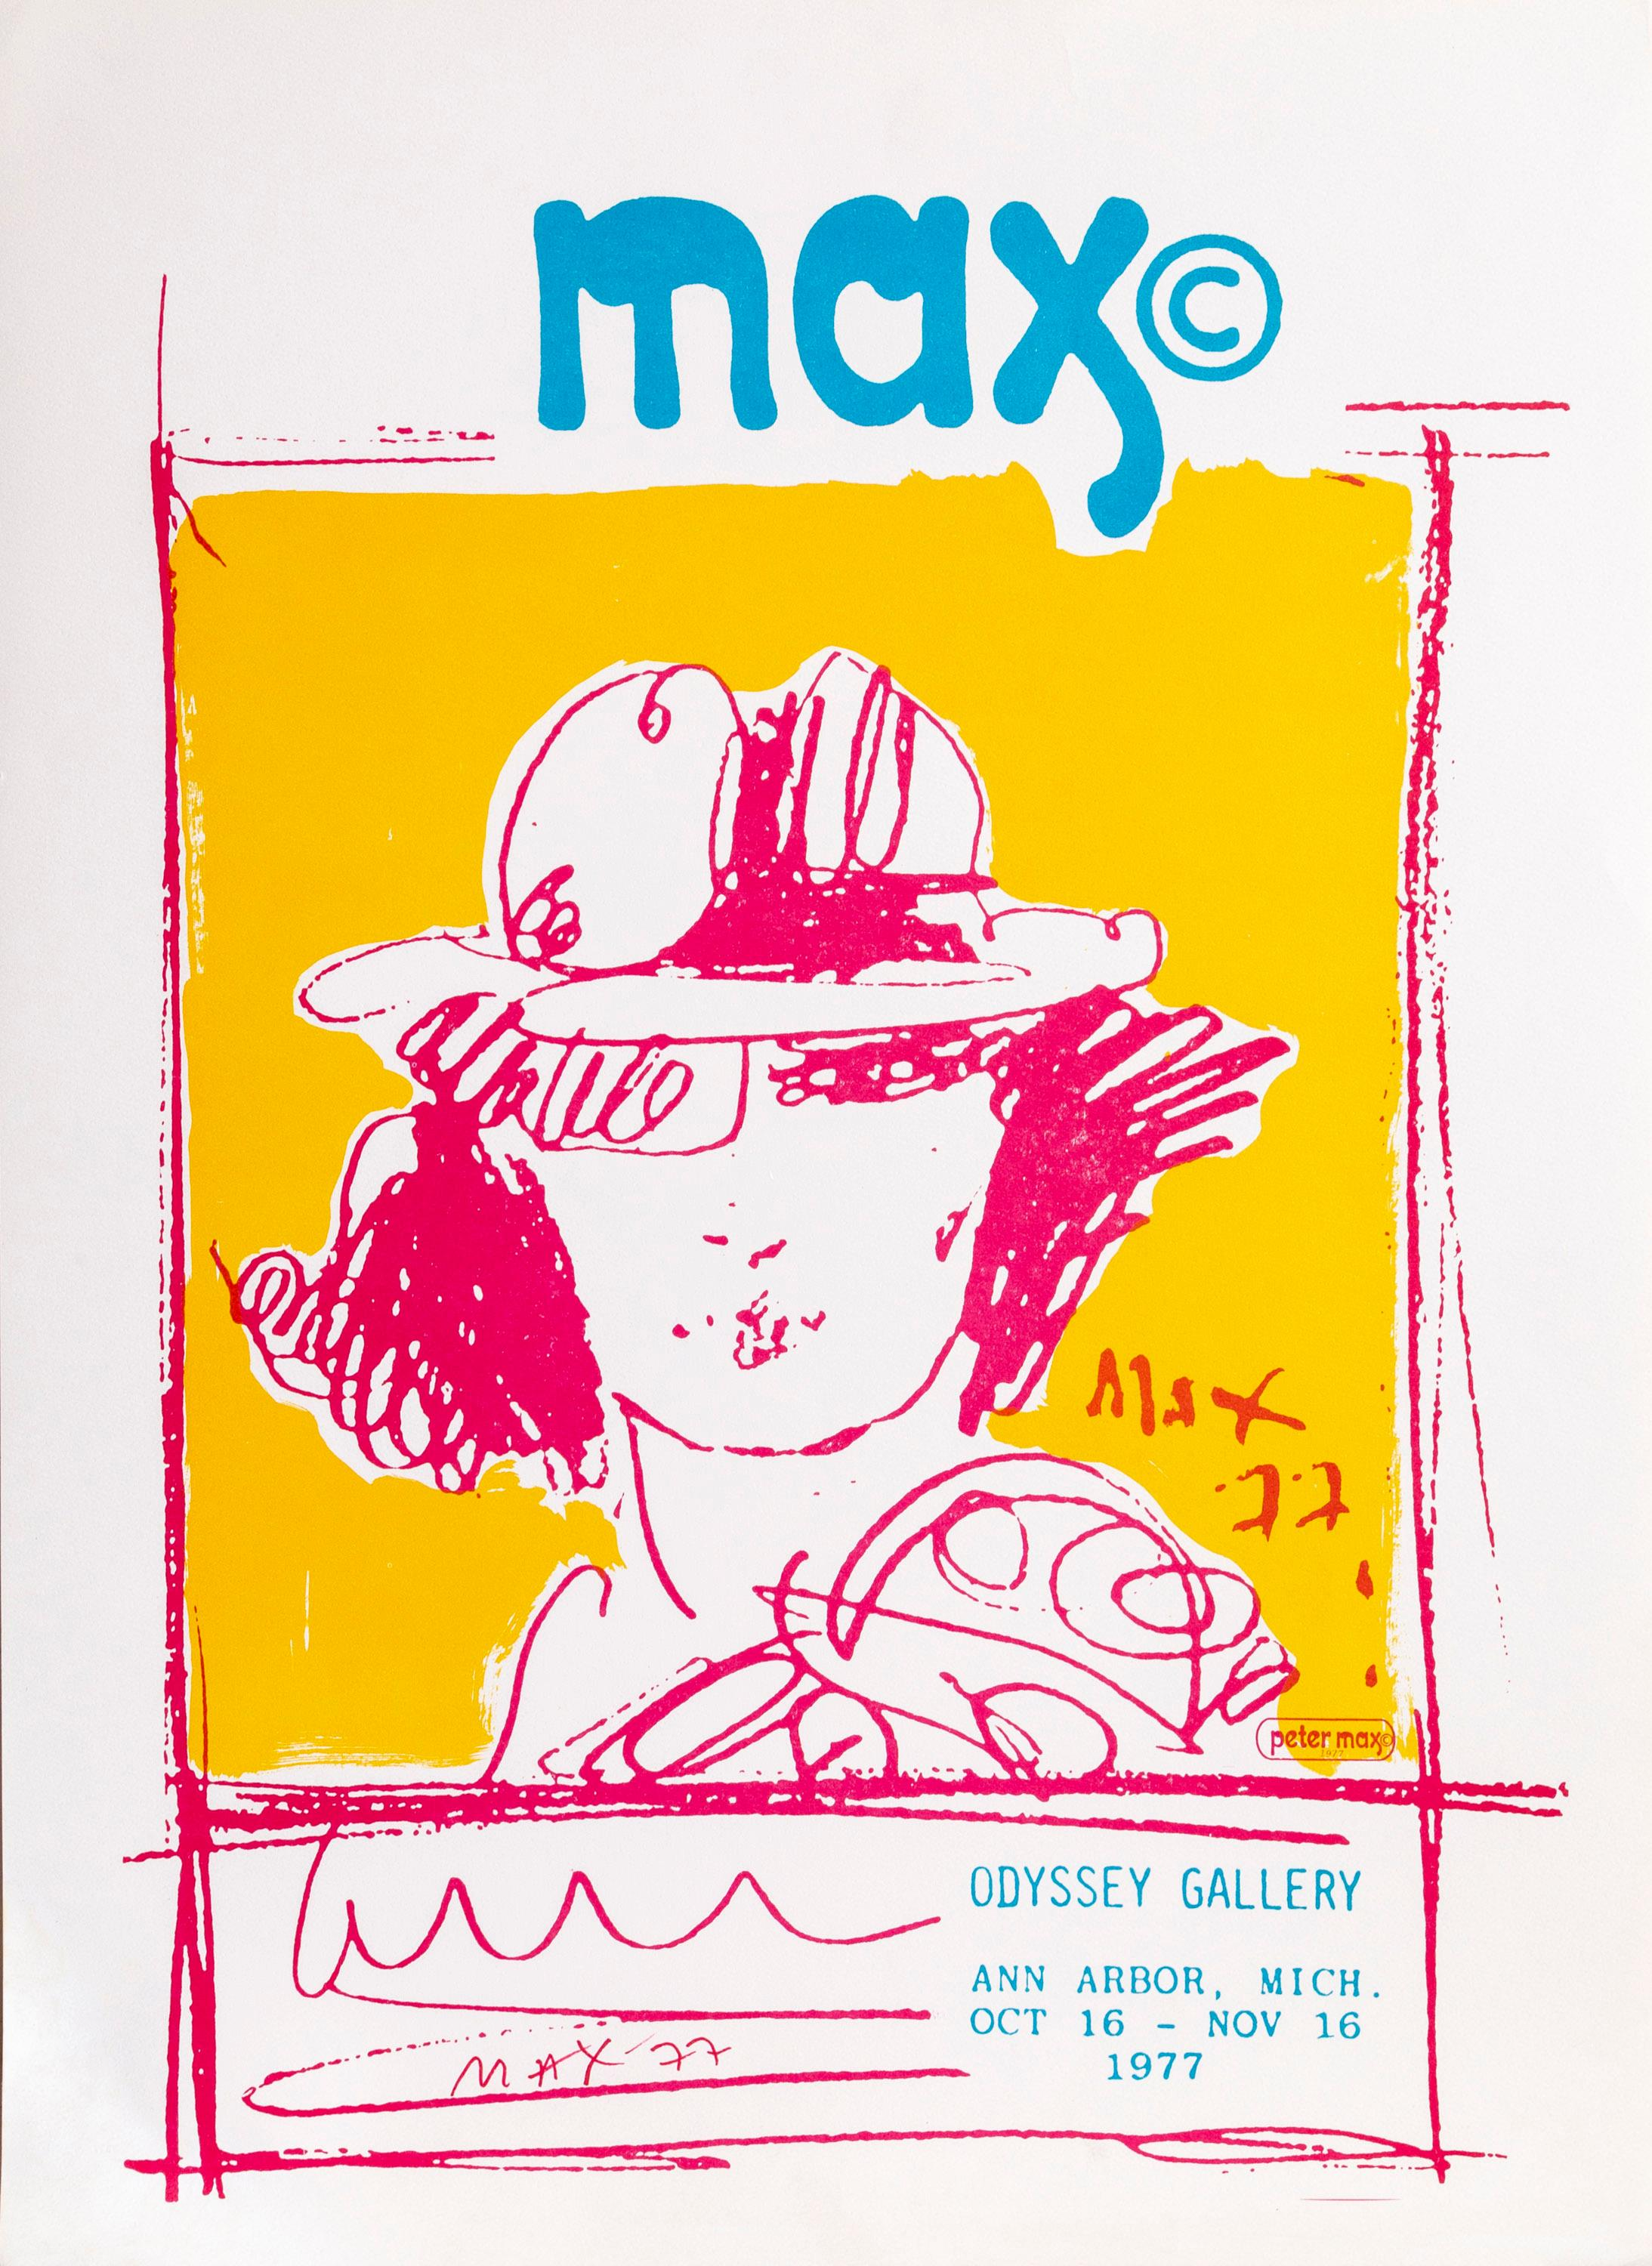 Peter Max, Odyssey Gallery, Poster